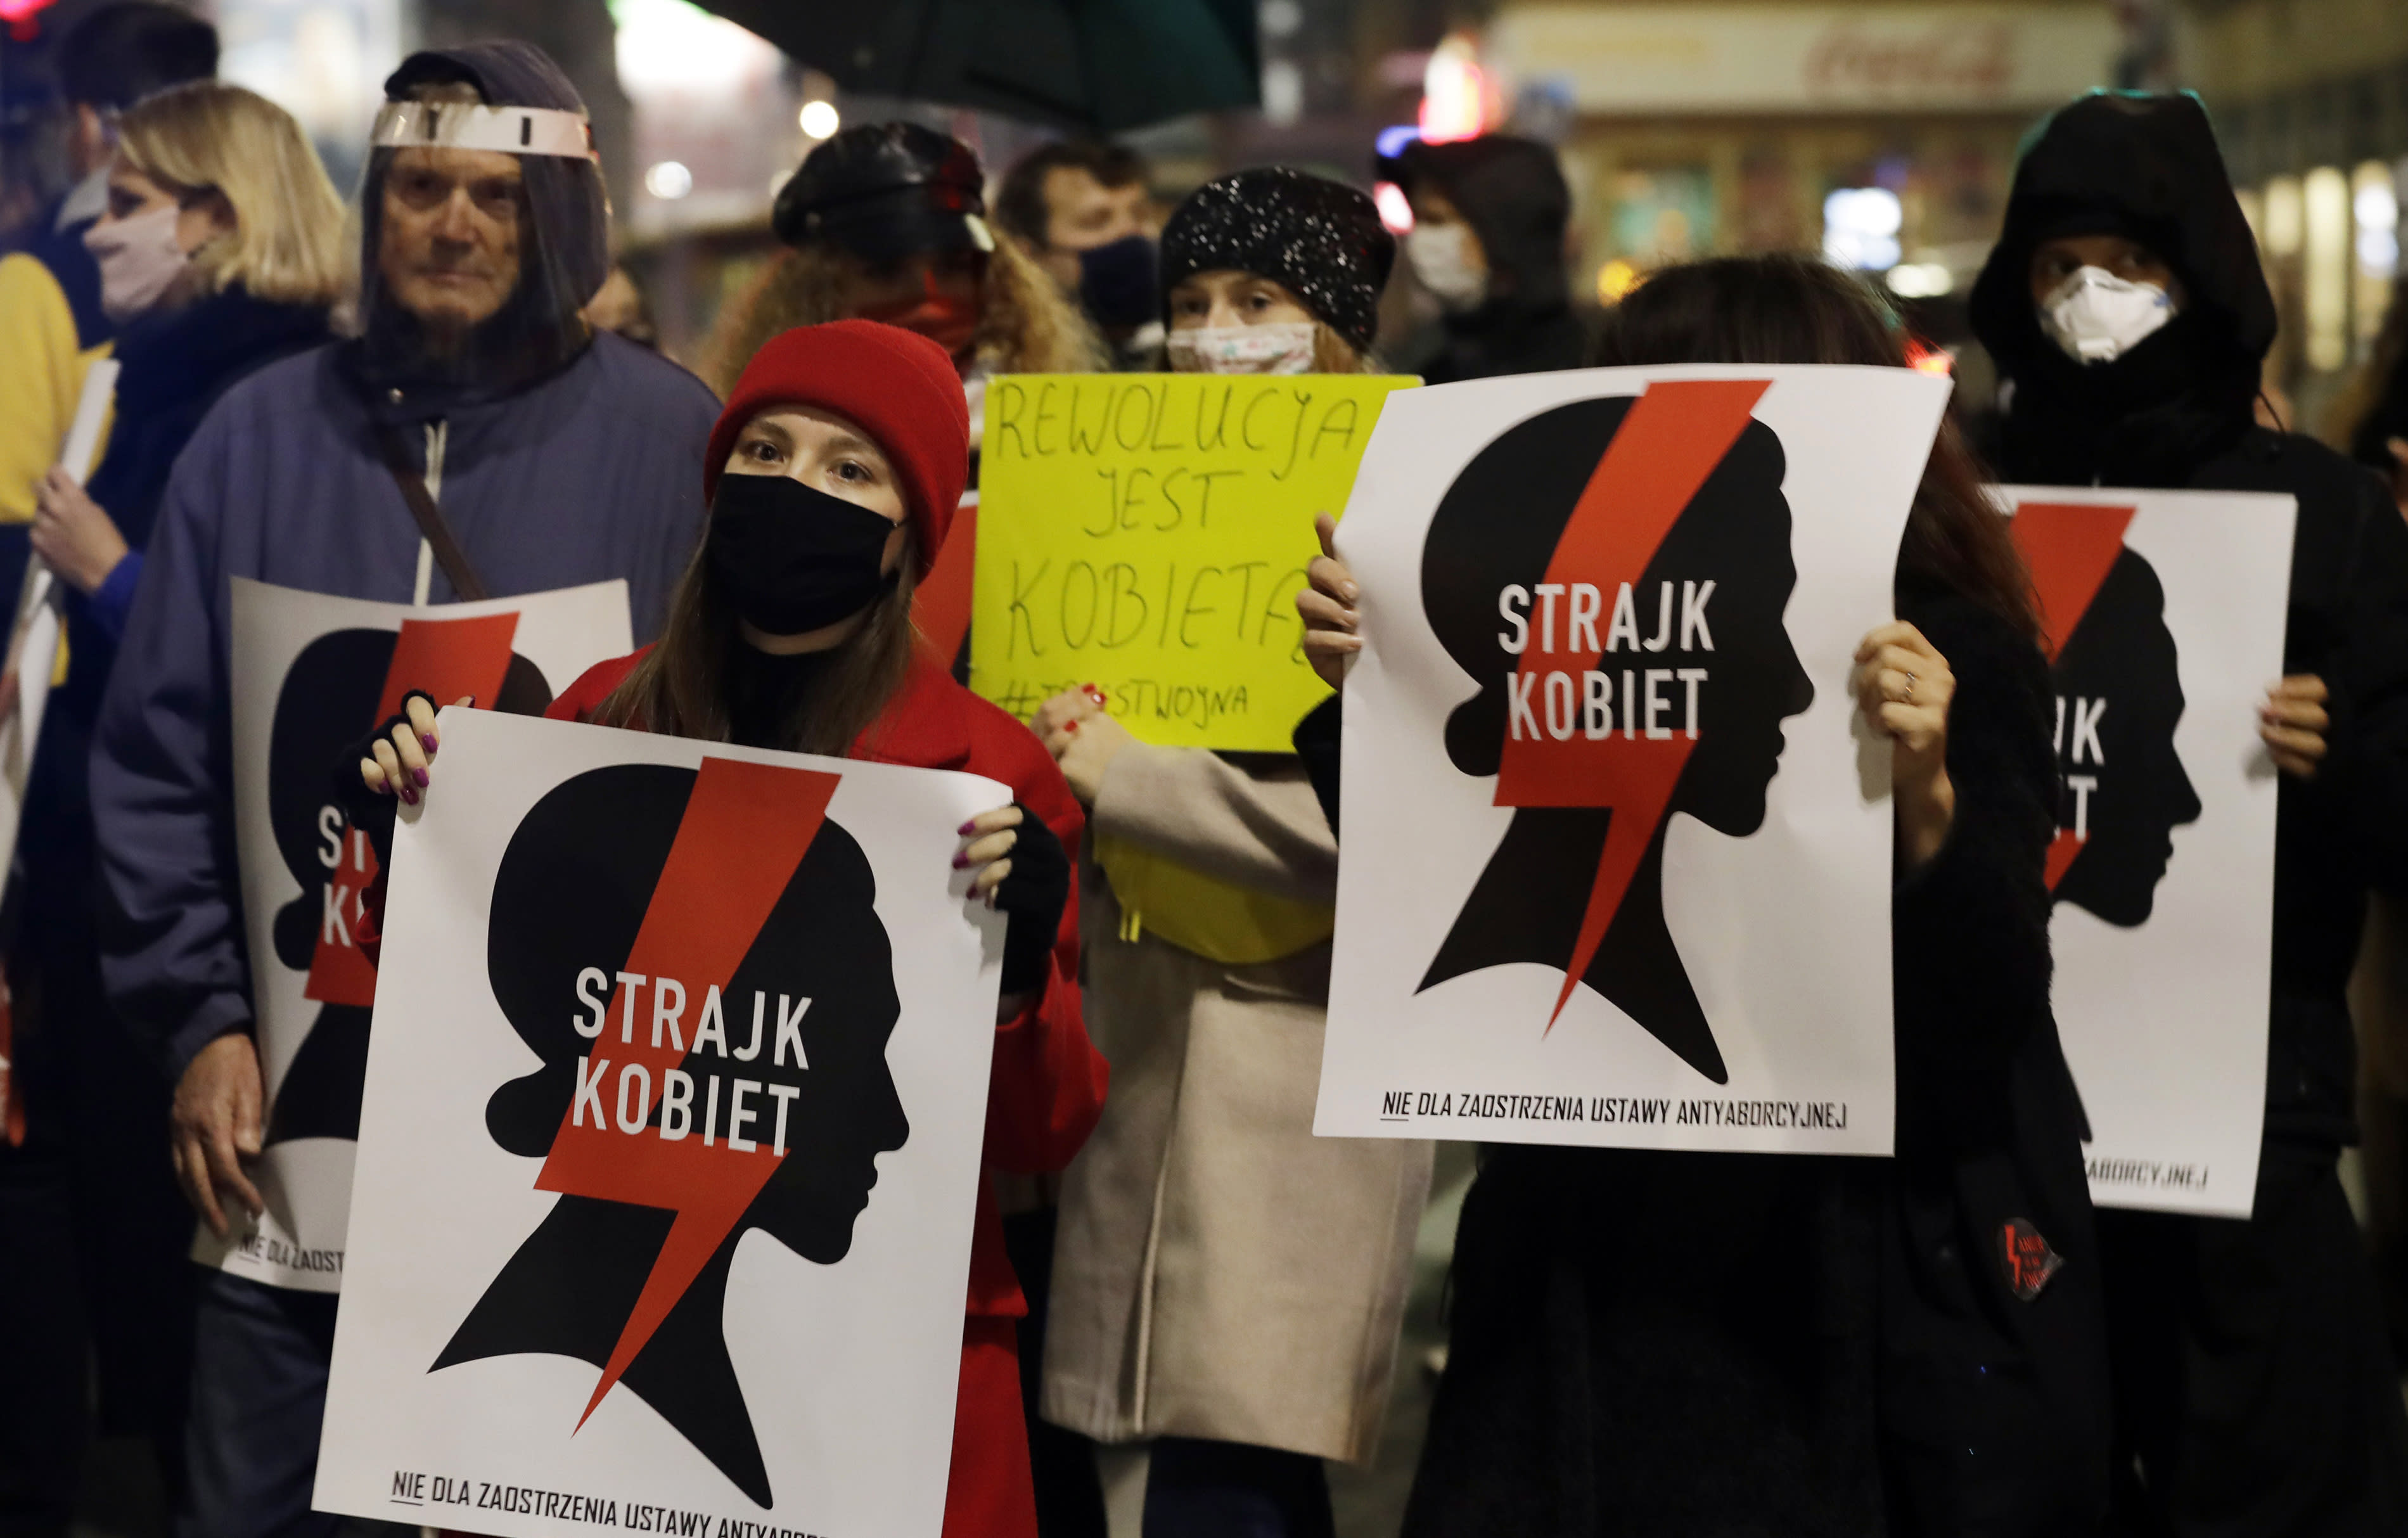 """Protesters hold signs reading in Polish """"women's strike"""" as they block a crossing in downtown Warsaw, Monday, Nov. 9, 2020, on the 12th straight day of anti-government protests that were triggered by the tightening of Poland's strict abortion law and are continuing despite a anti-COVID-19 ban on public gatherings. (AP Photo/Czarek Sokolowski)"""